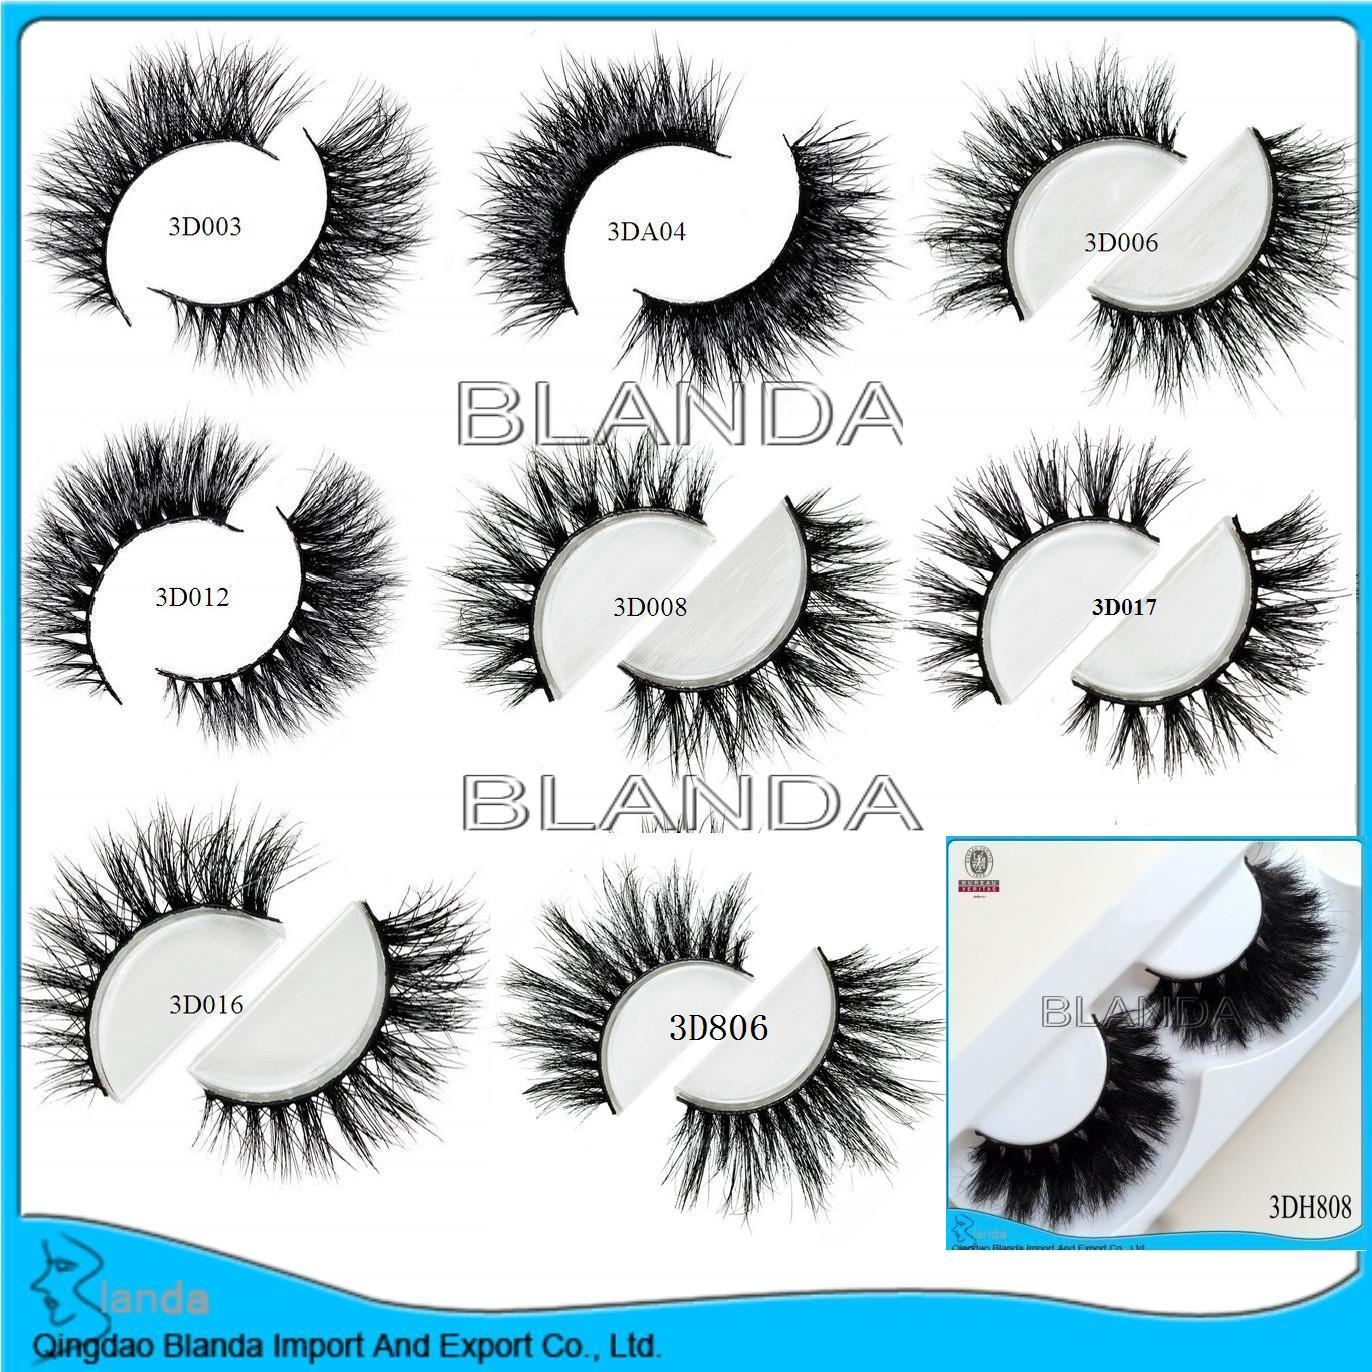 Super Soft 3D Silk Lash 100% Handmade 3D Faux Mink Lashes 3D Synthetic False Eyelashes